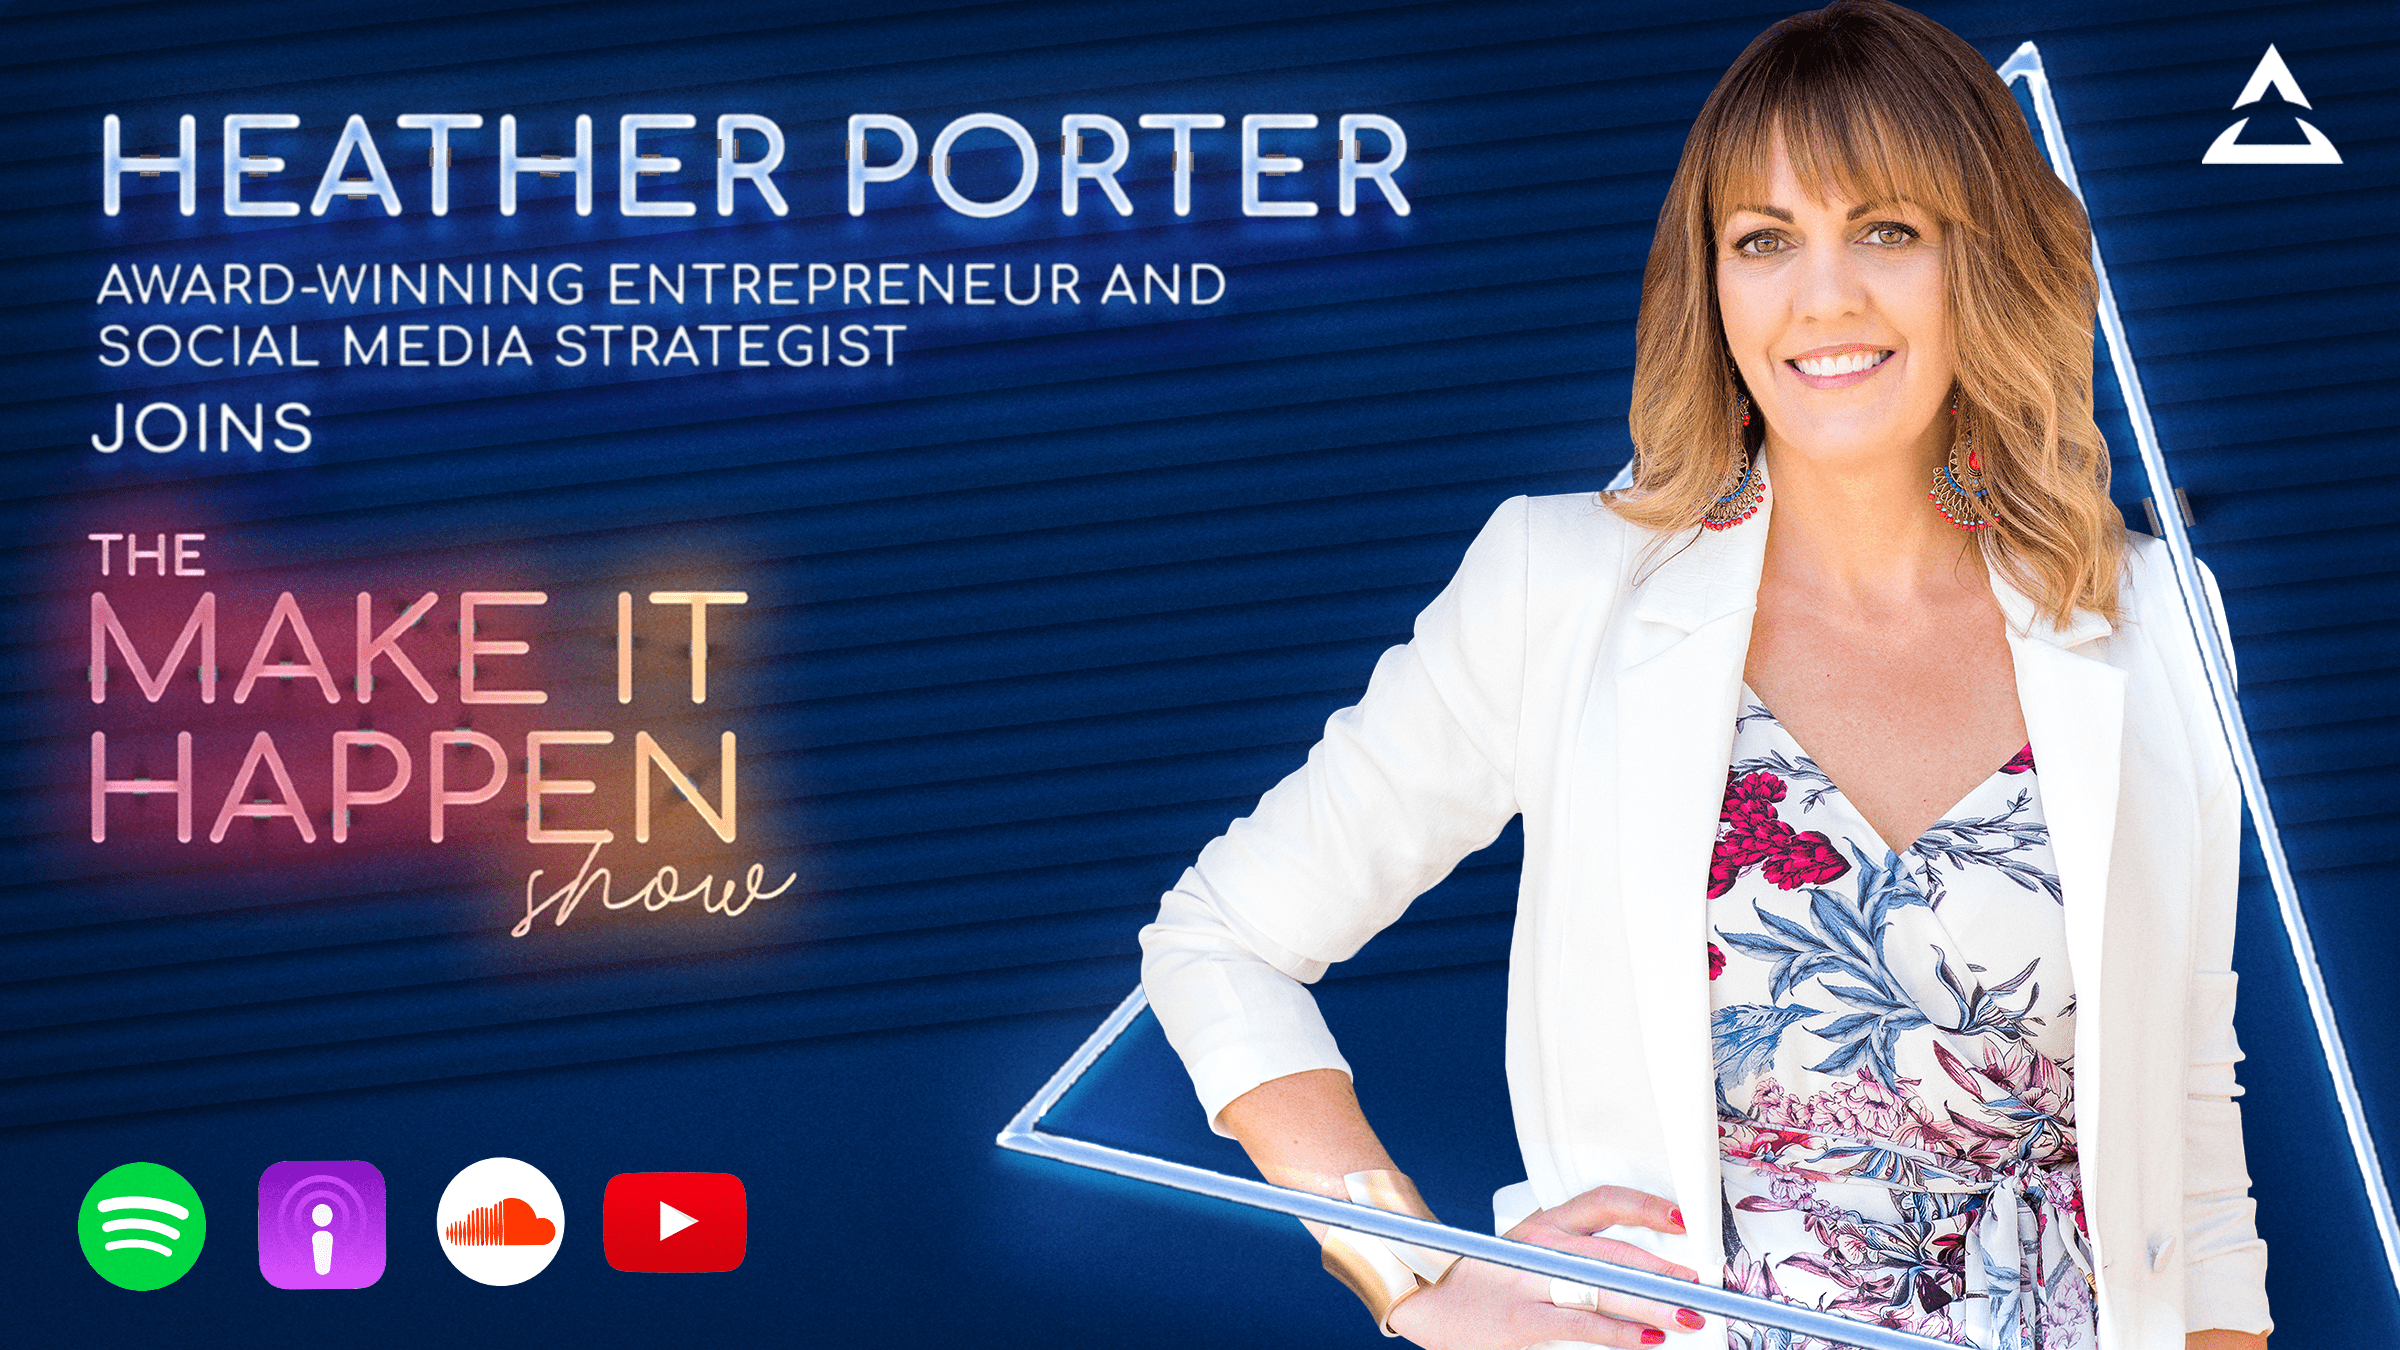 36. Heather Porterpromotional image for The Make It Happen Show